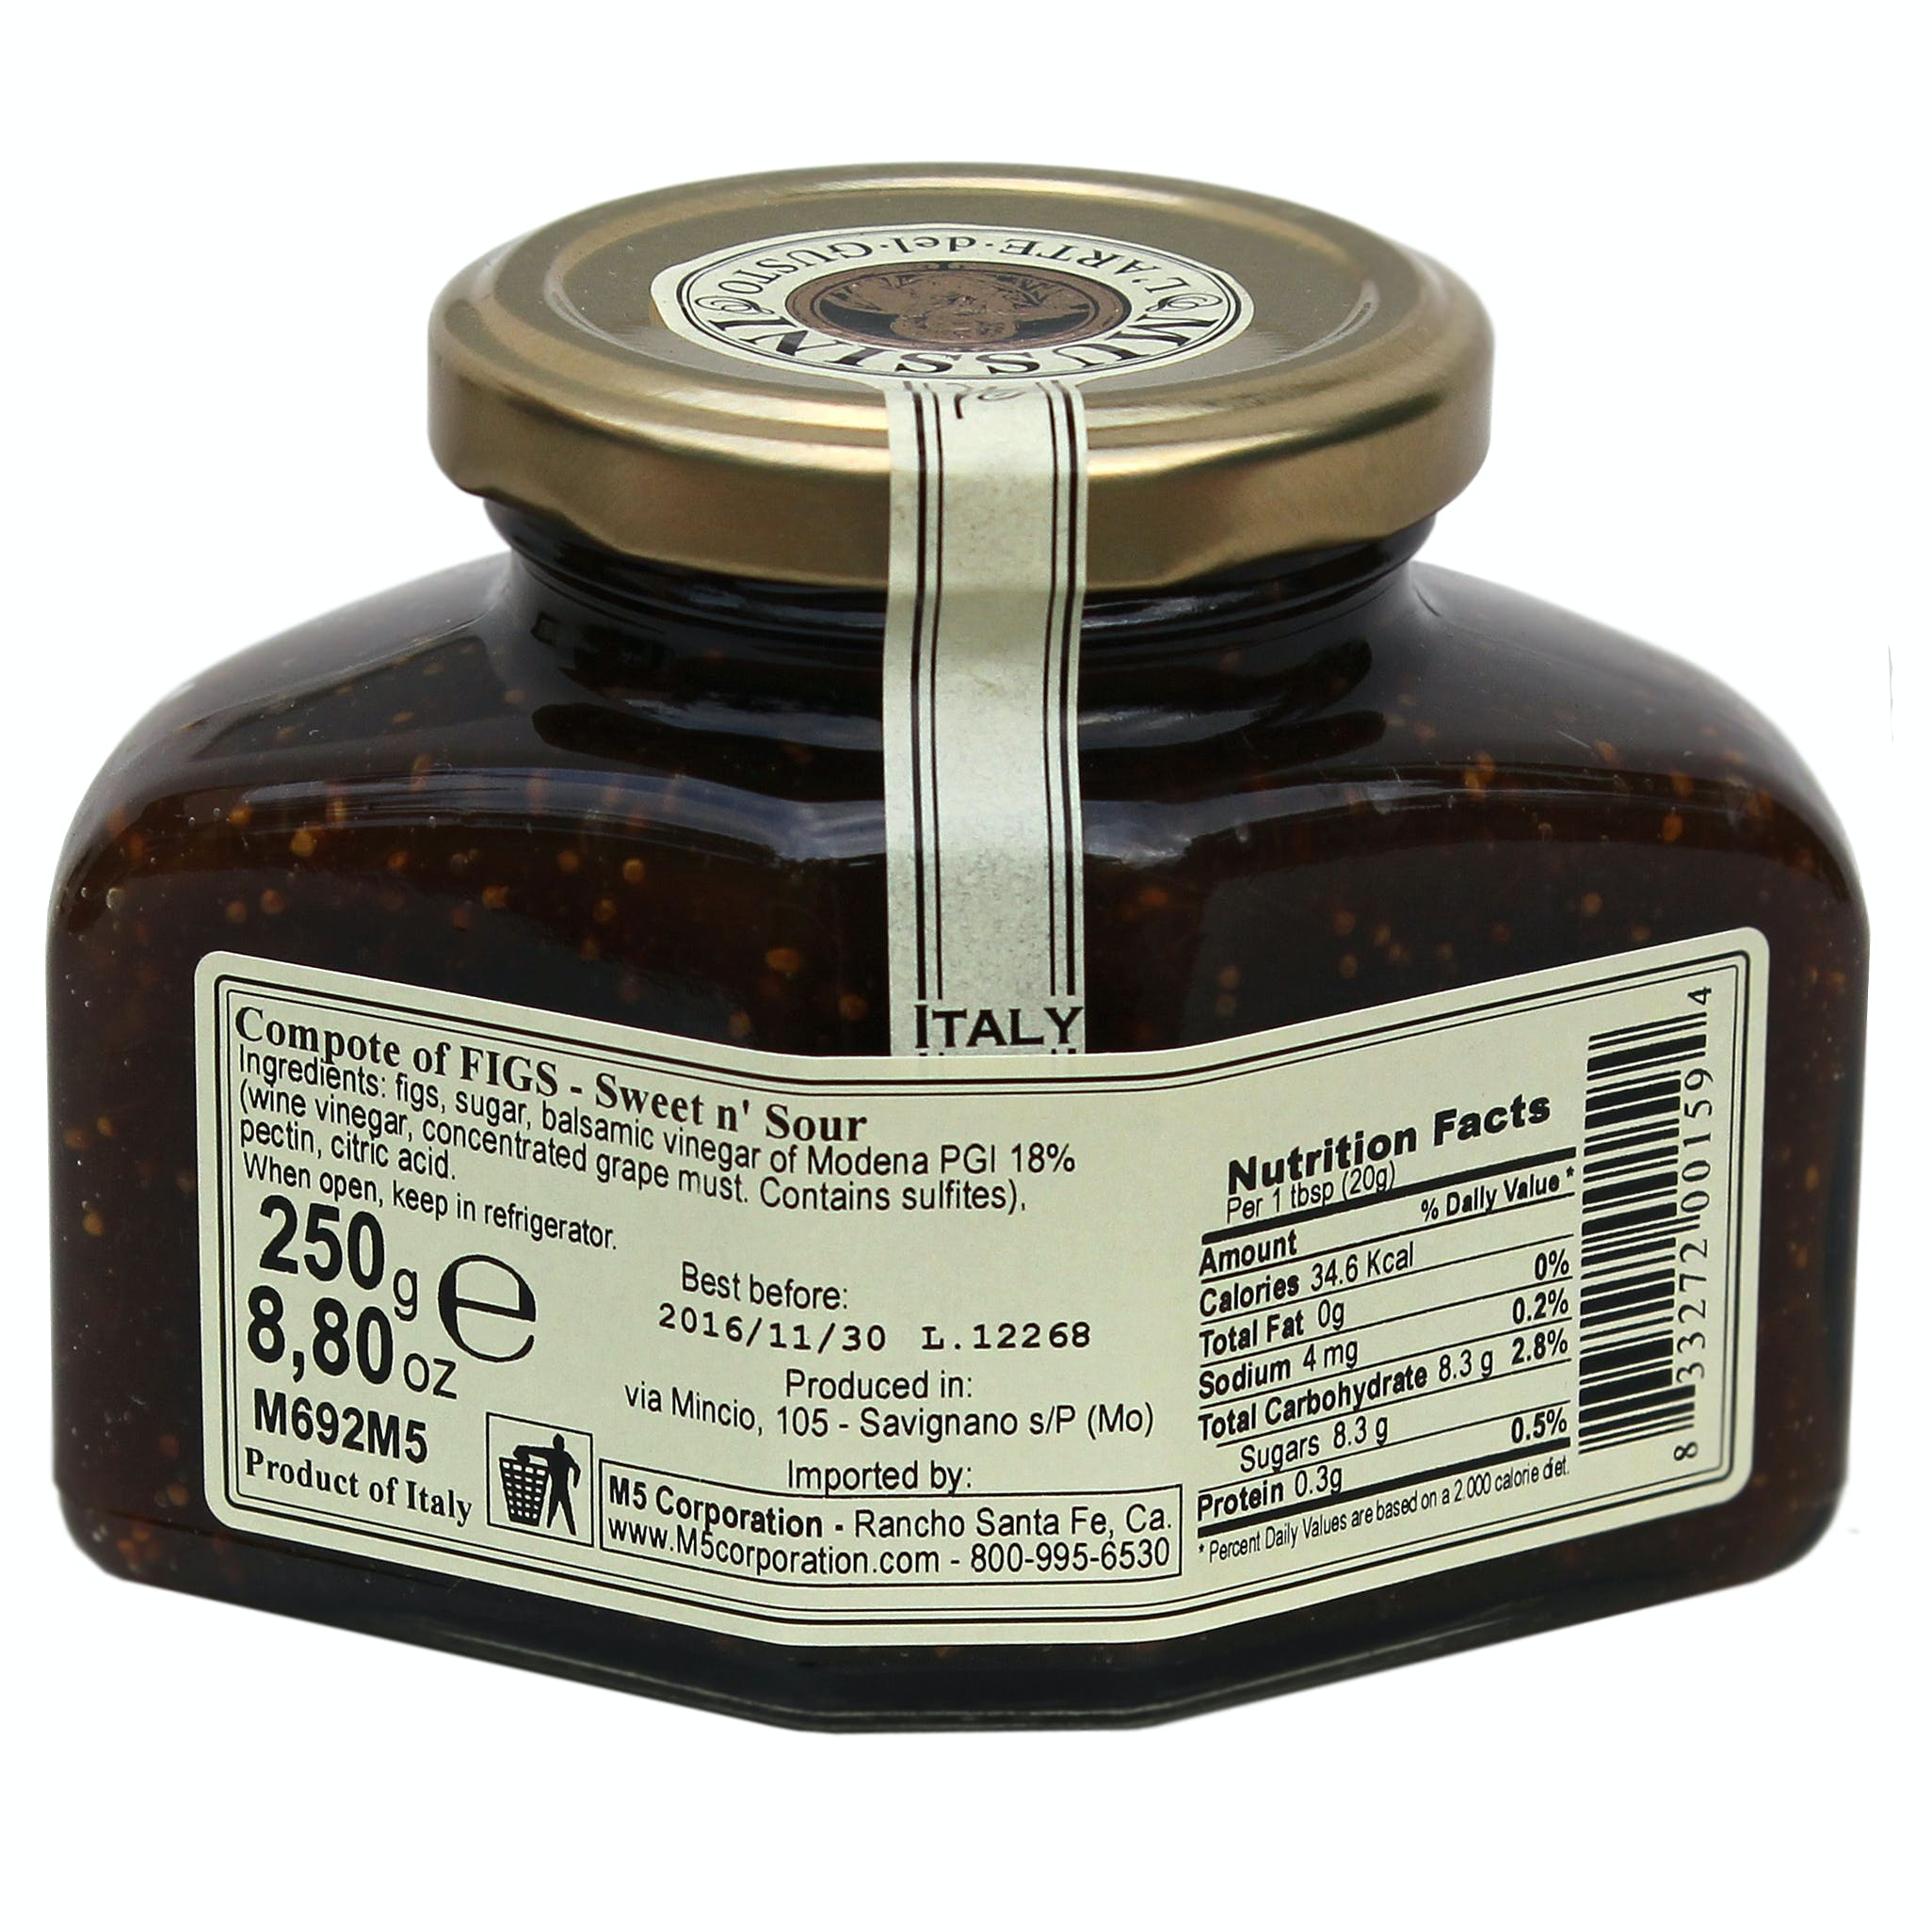 Figs and Balsamic Vinegar Compote - sold by M5 Corporation